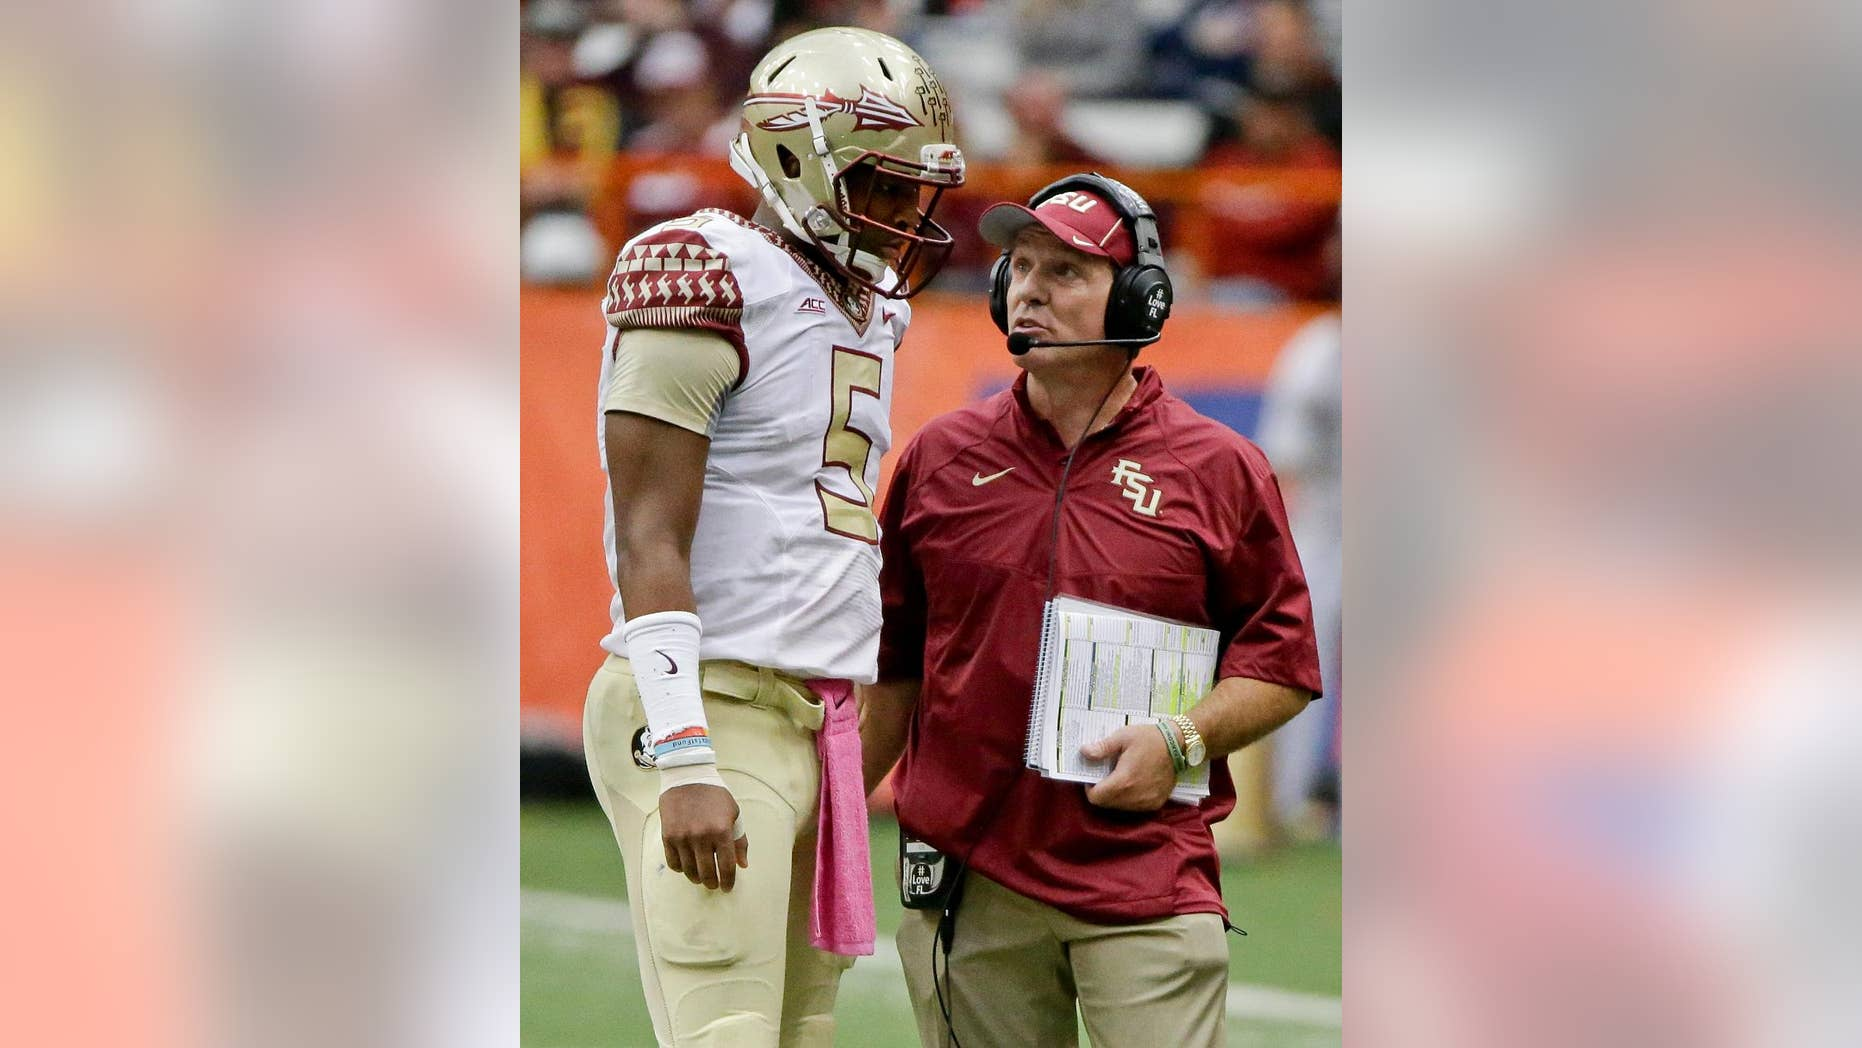 Florida State head coach Jimbo Fisher, right, talks to quarterback Jameis Winston (5) during the second half of an NCAA college football game against Syracuse, Saturday, Oct. 11, 2014, in Syracuse, N.Y. Florida State won the game 38-20. (AP Photo/Frank Franklin II)